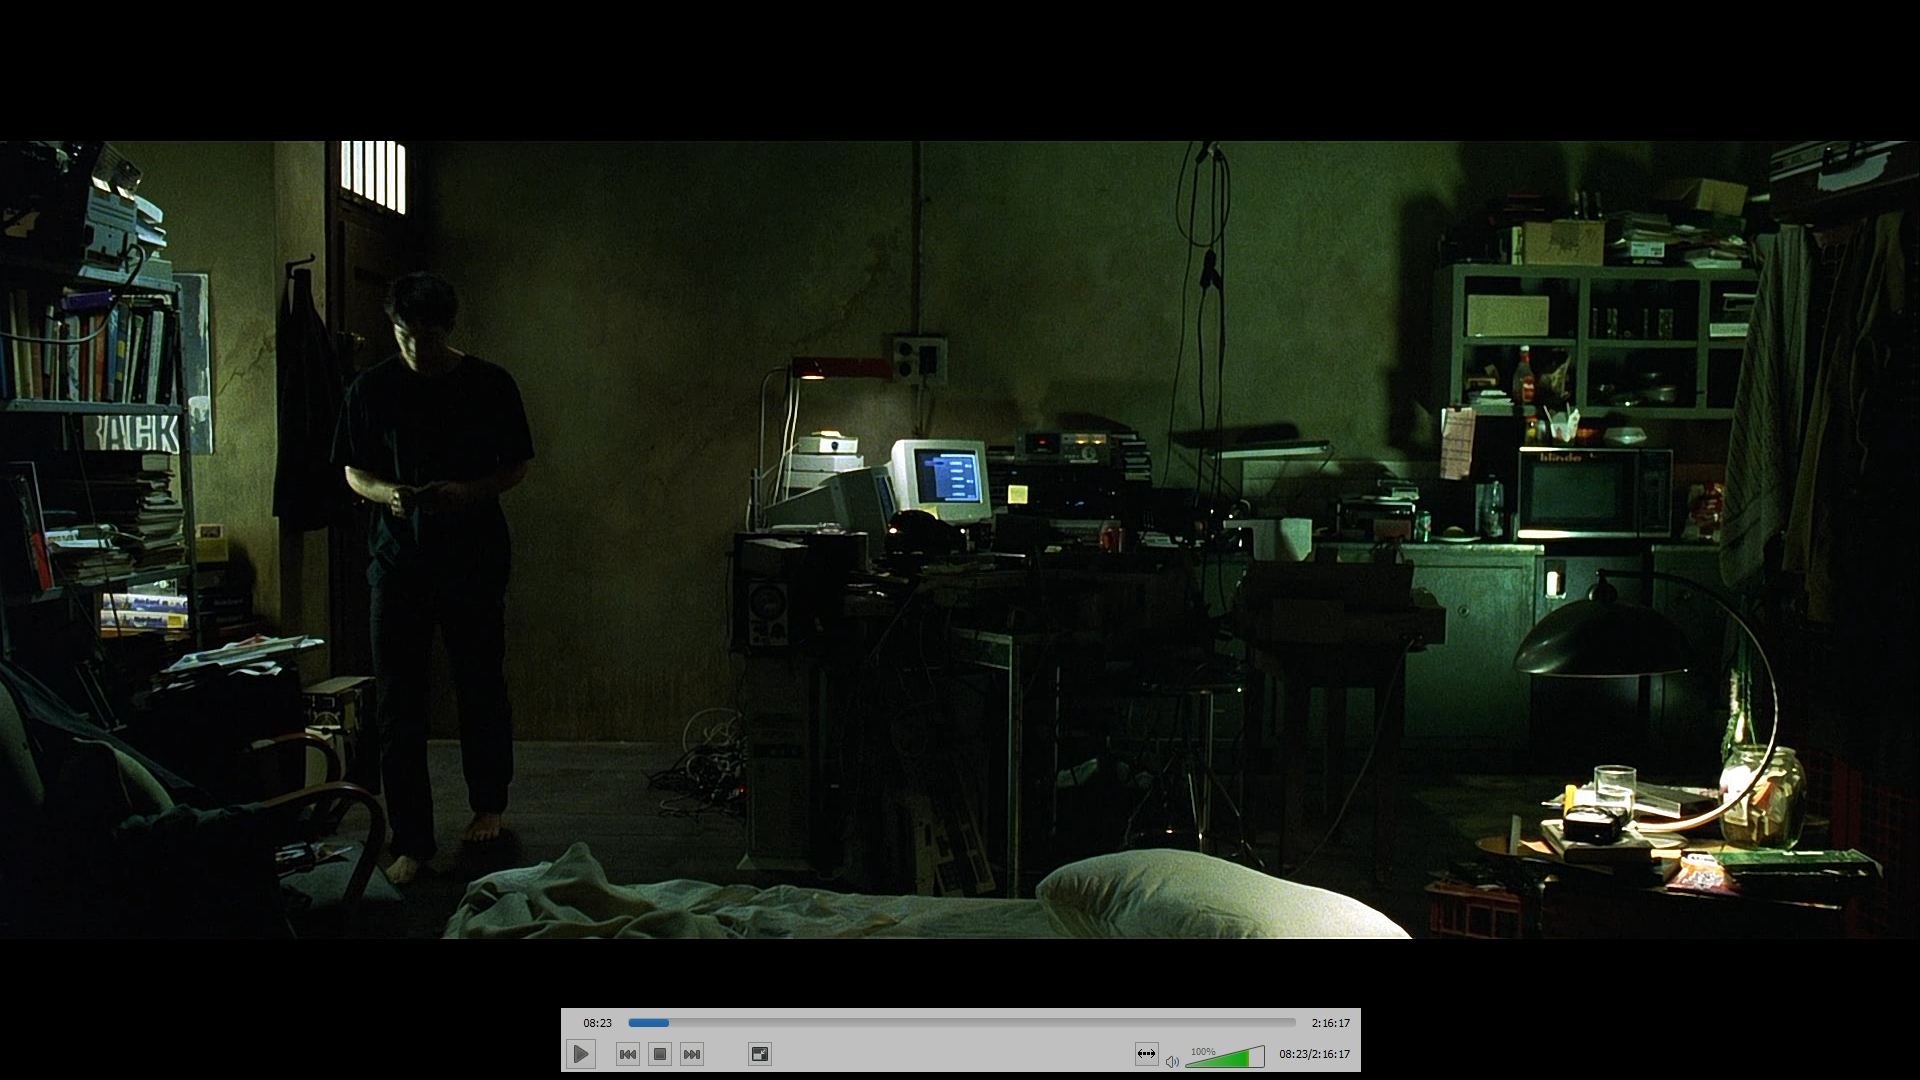 Neo's Apartment from The Matrix Cyberpunk aesthetic